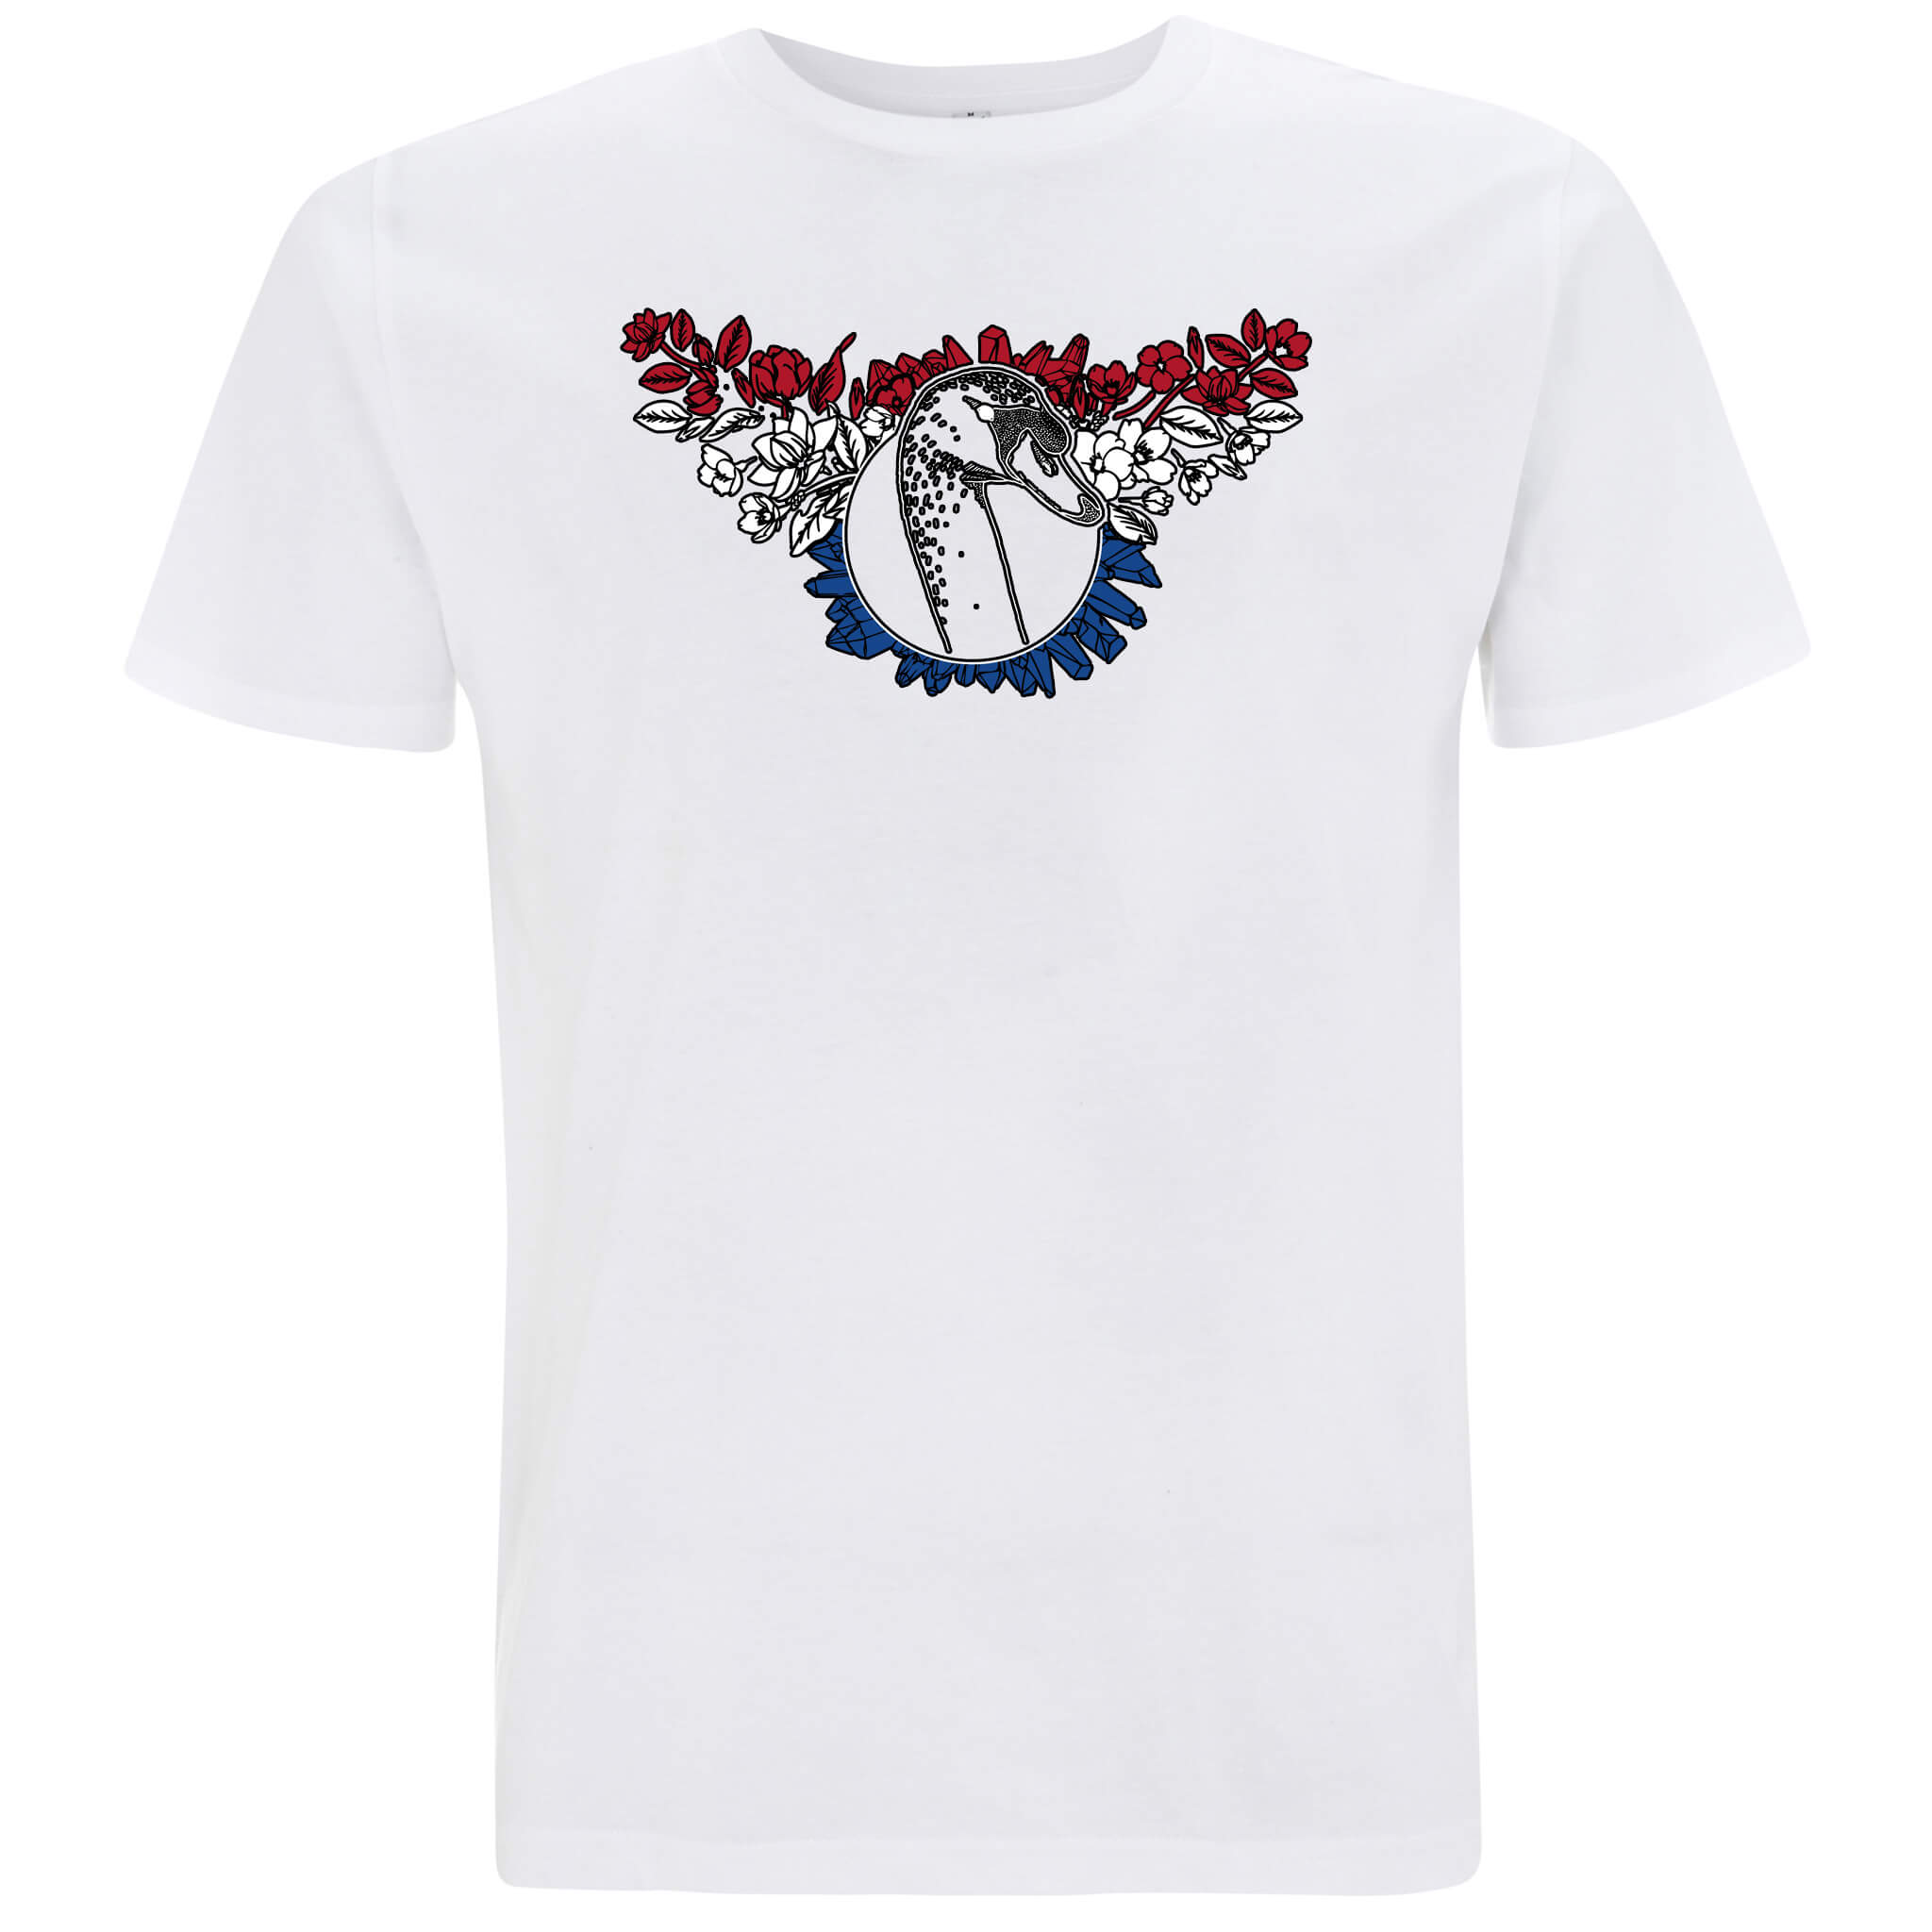 Internazionale Olanda - T-shirt Uomo - T-Shirt by Fol The Brand